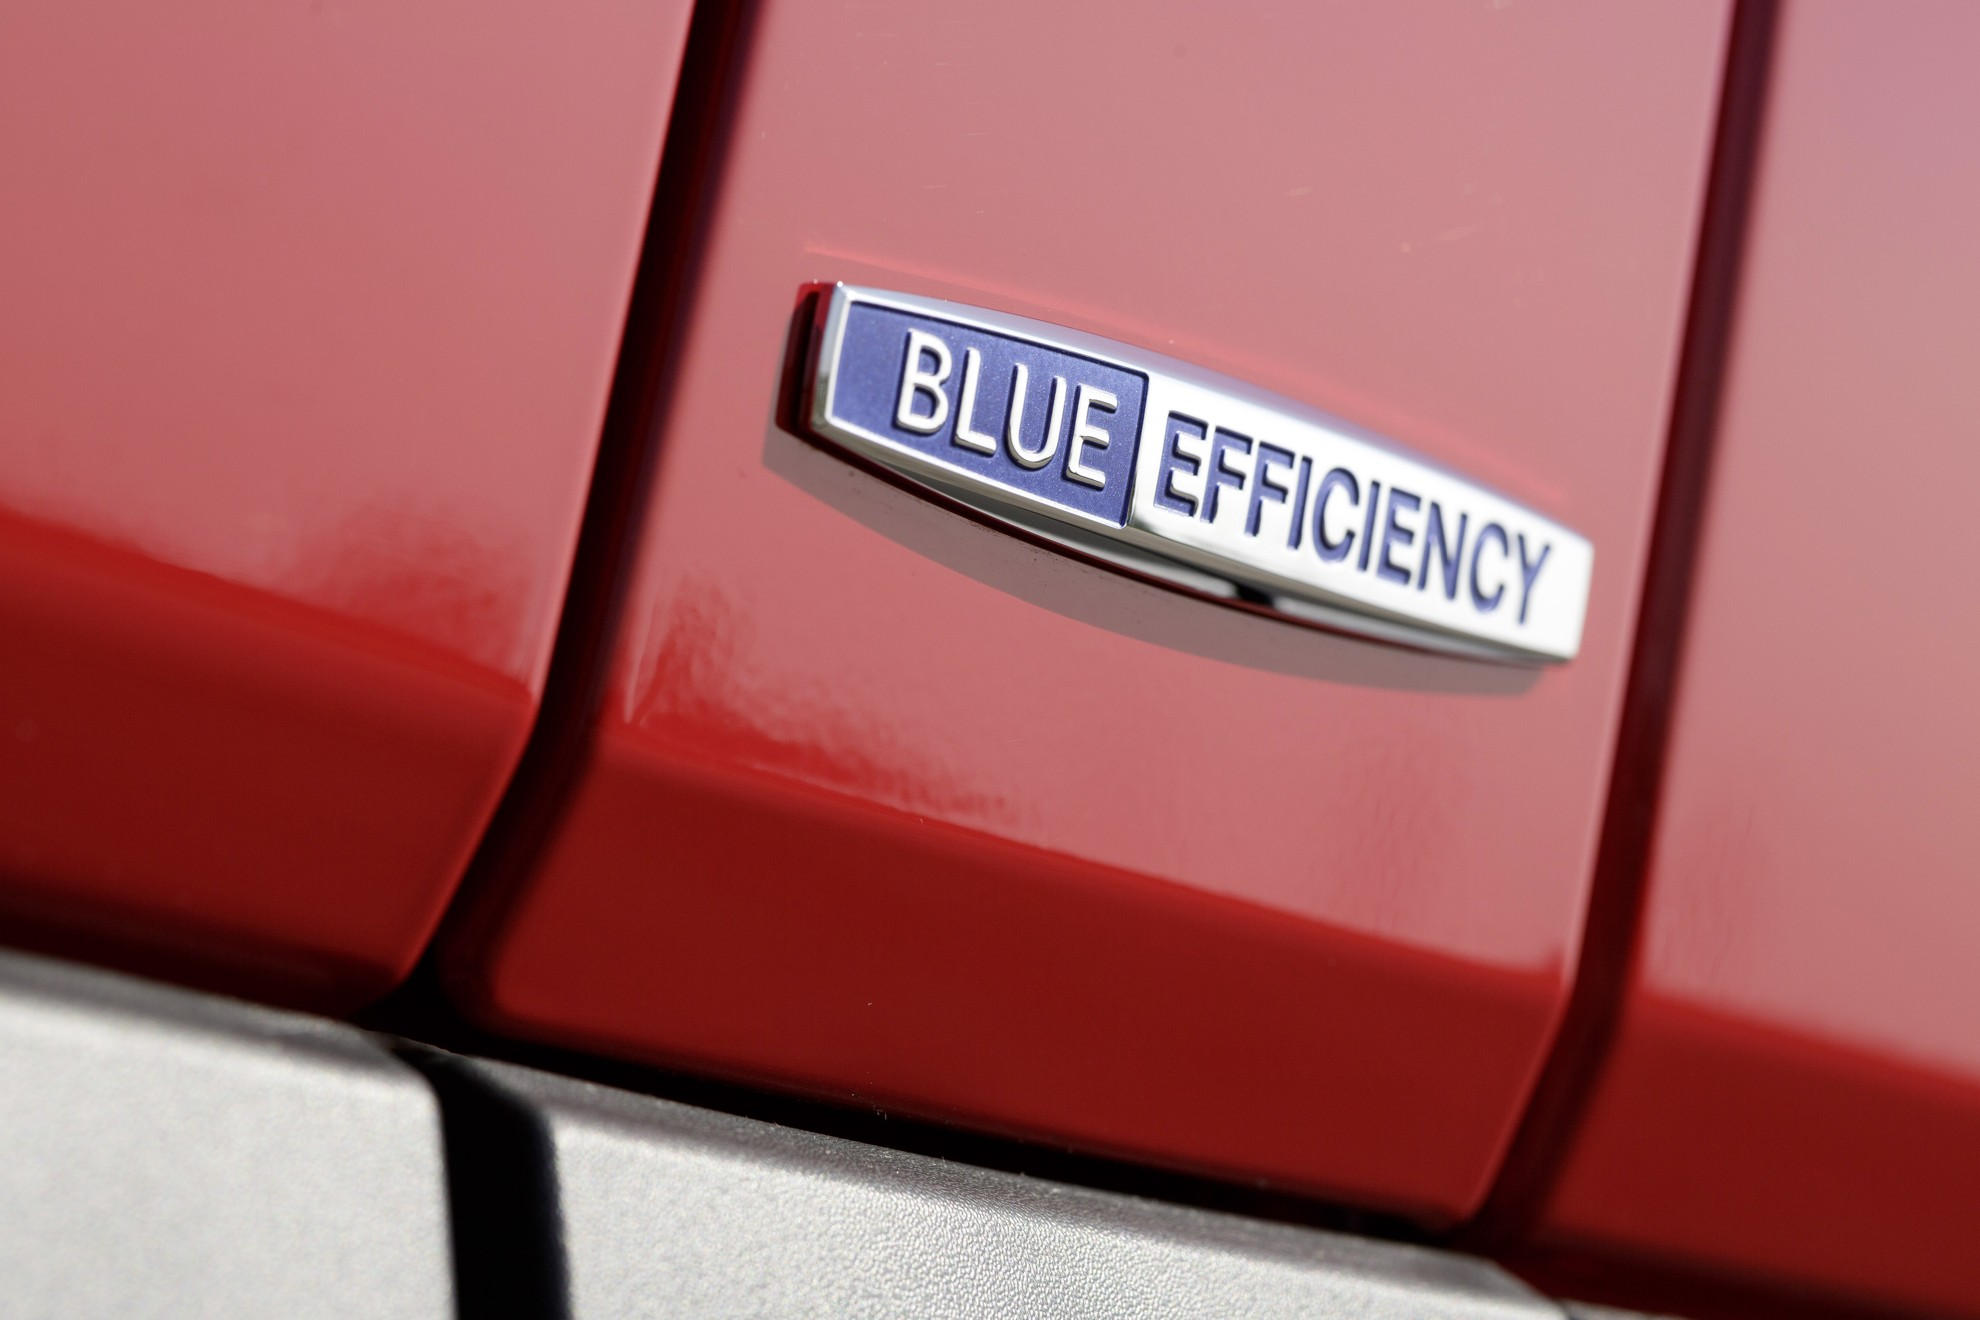 Blue-efficiency